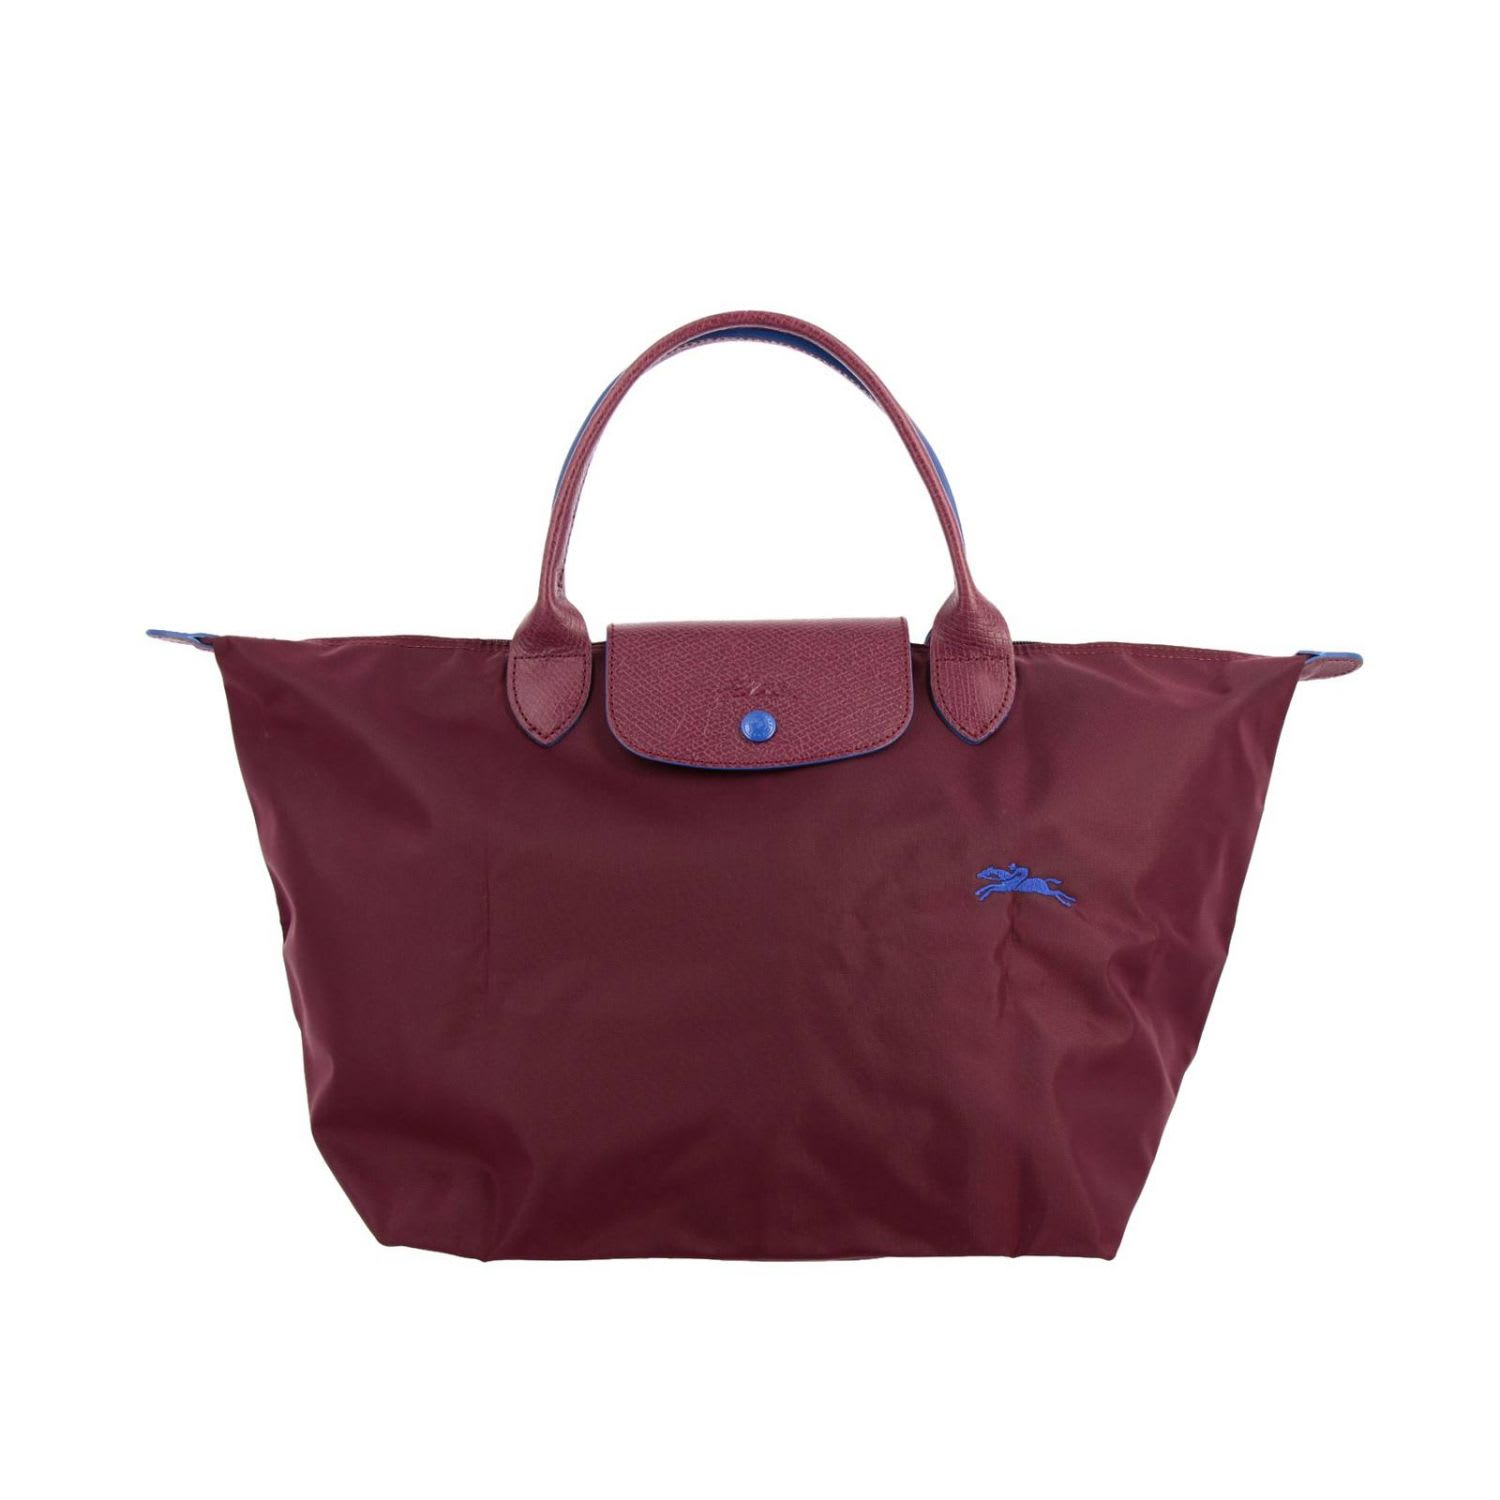 Longchamp Bag In Nylon With Embroidered Logo In Plum